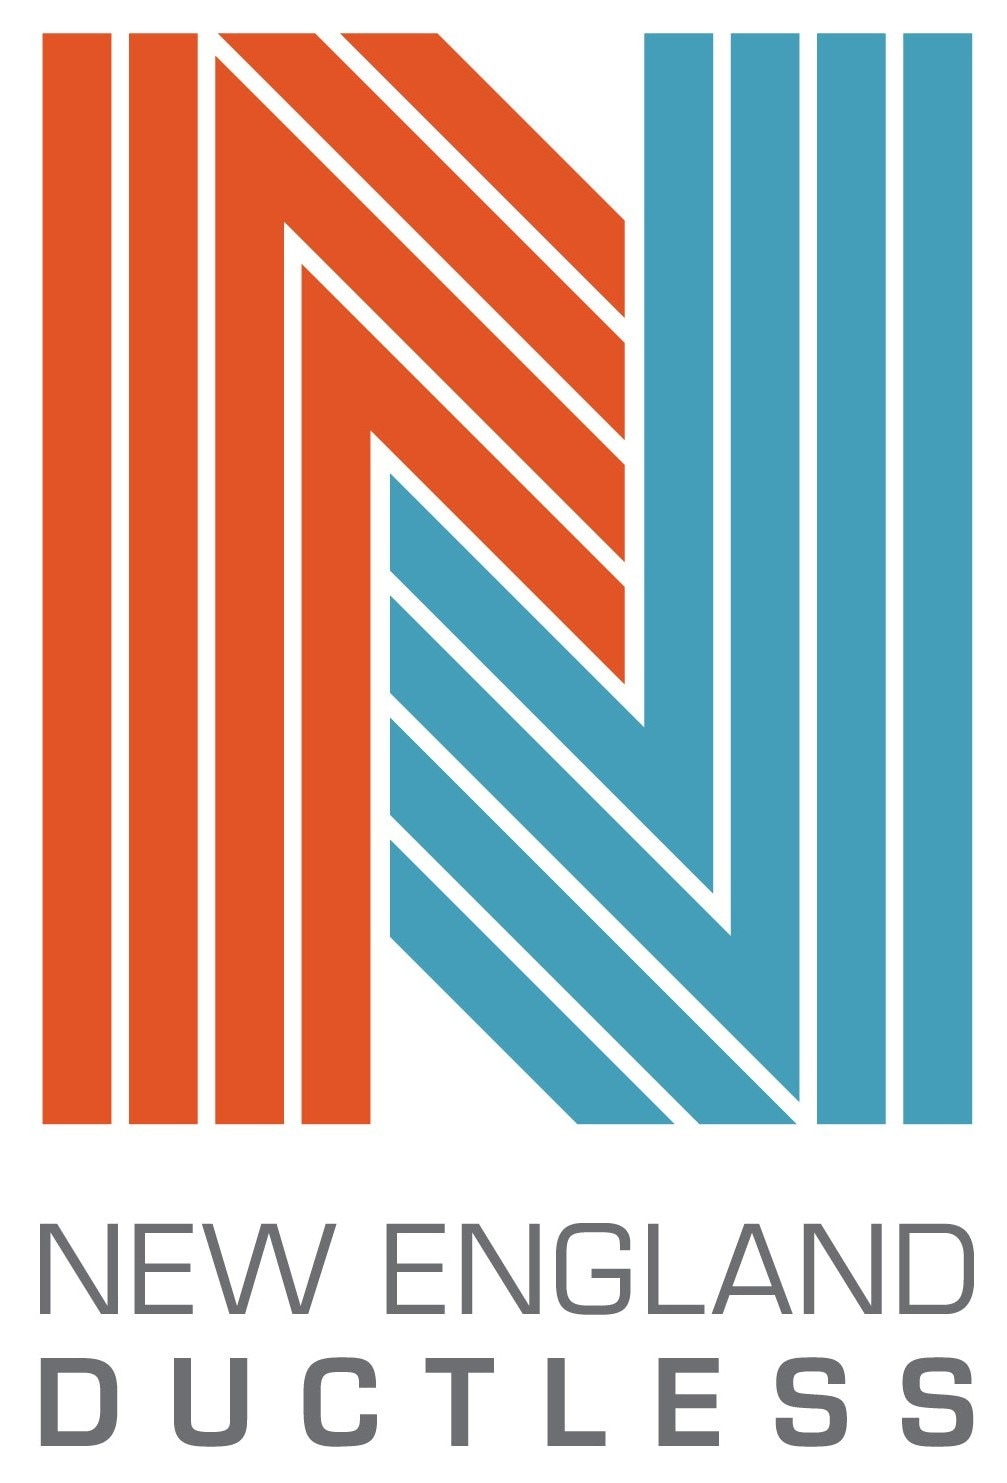 New England Ductless Inc logo